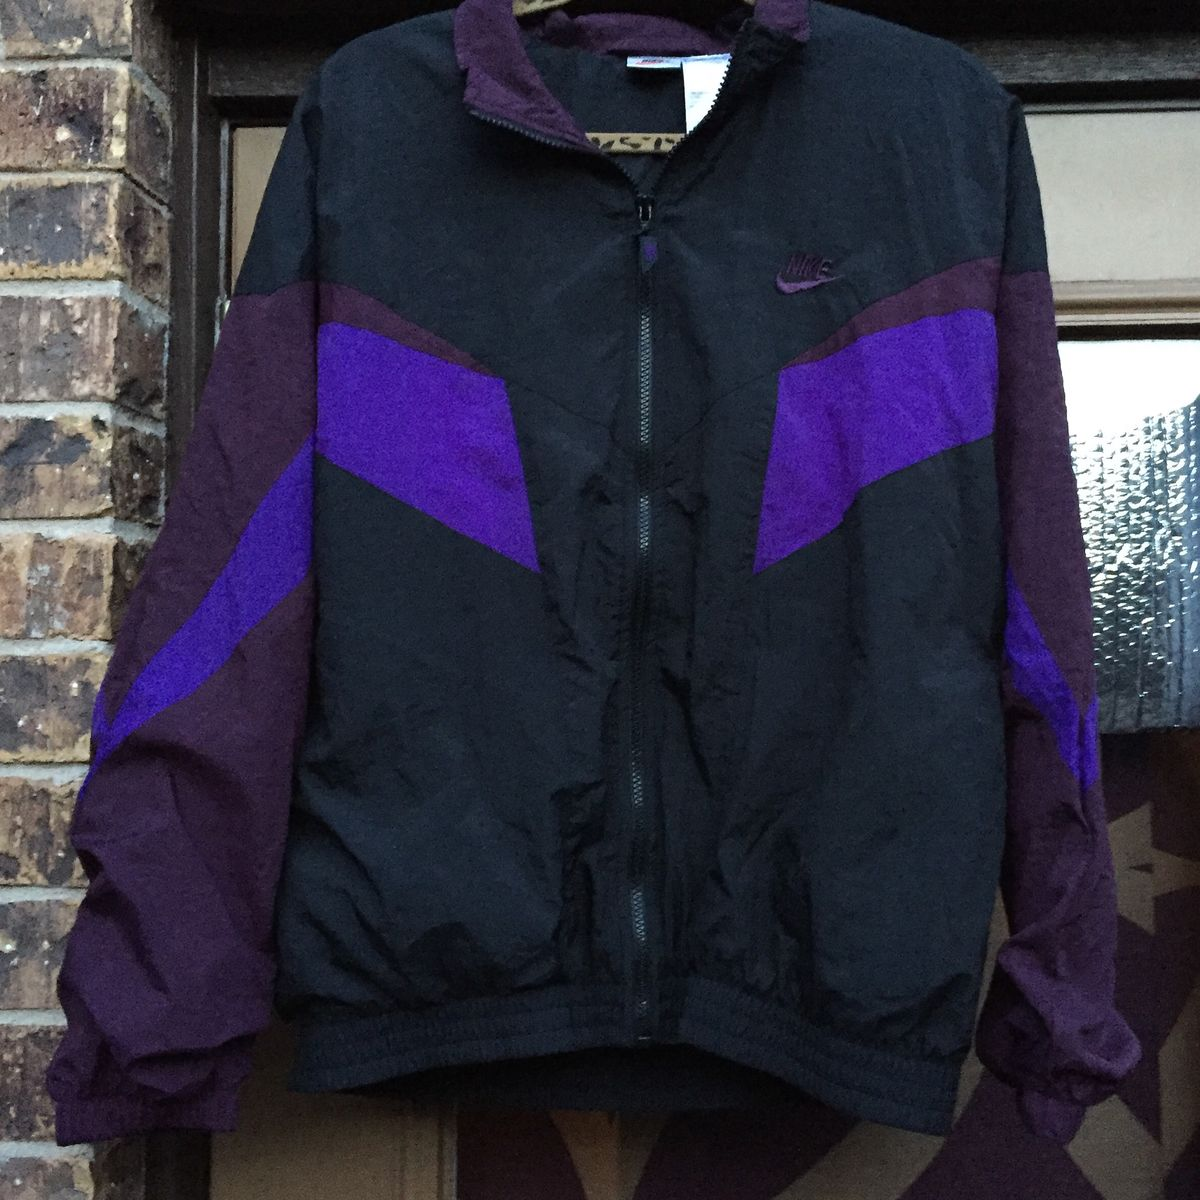 0cad1b6a79c3bb Amazing Vintage 90s Nike Windbreaker - product images ...